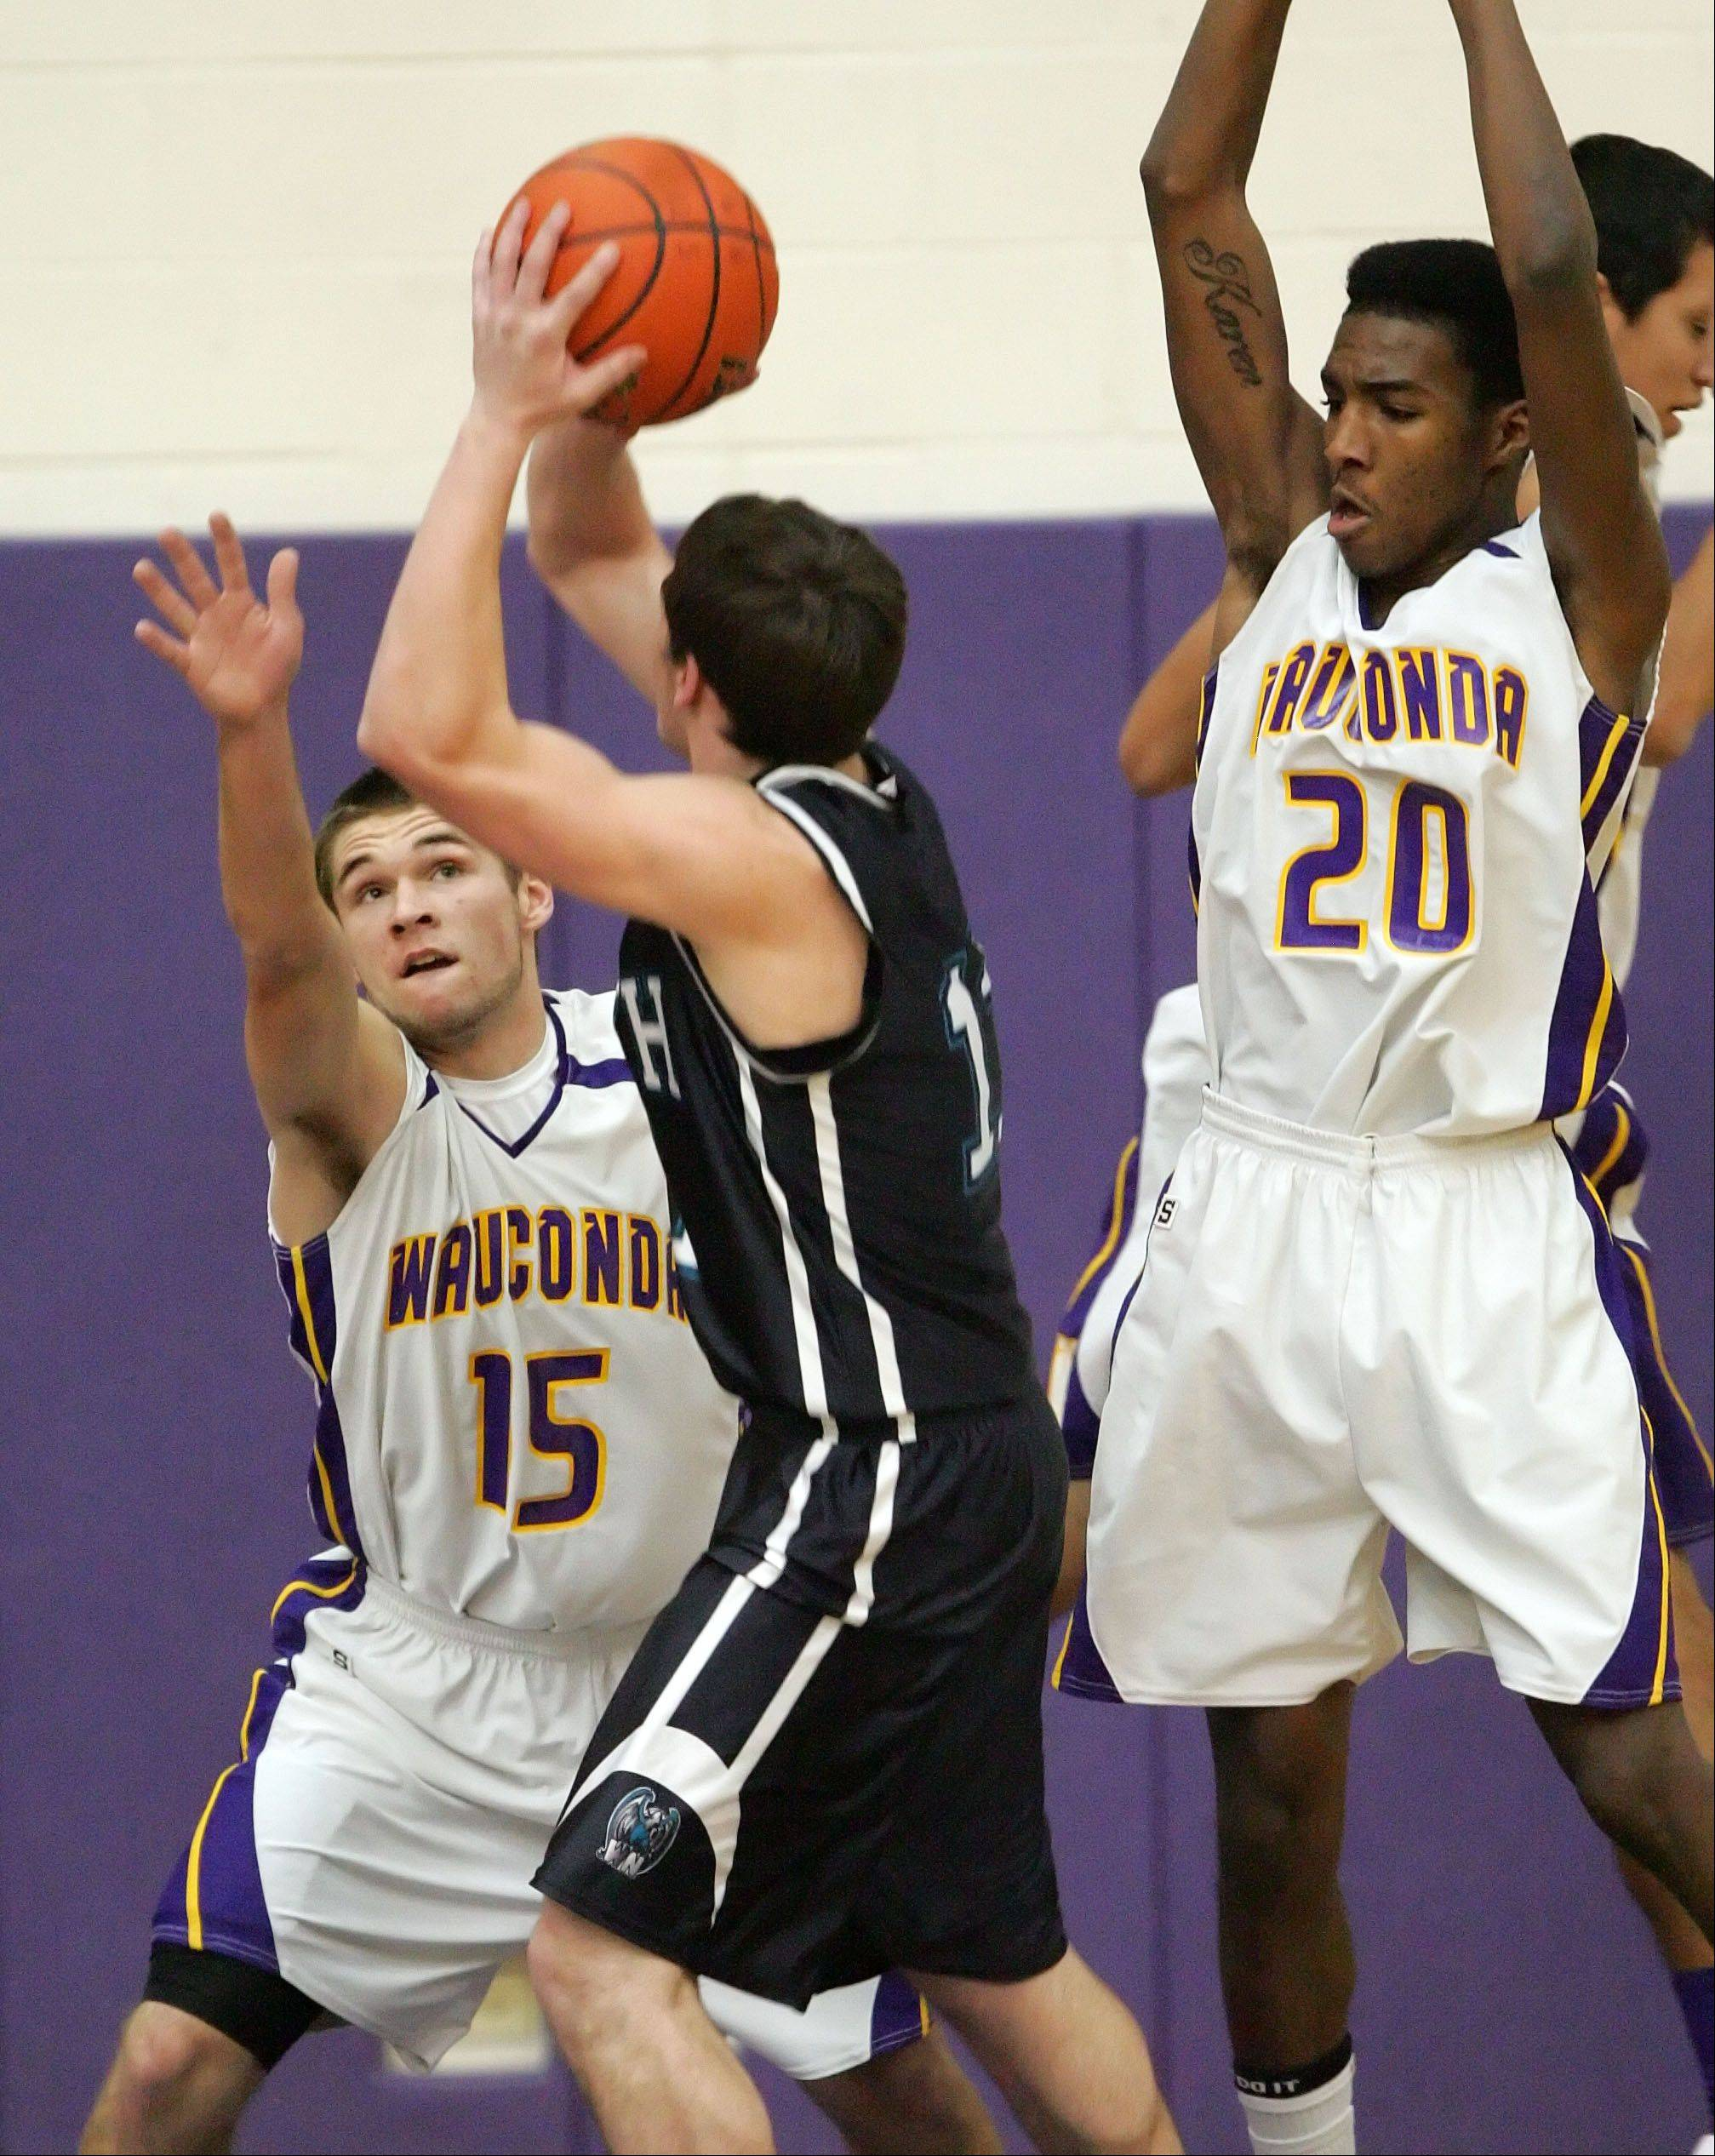 Wauconda's Keith Blomberg and Devon King defend against Woodstock North's Steven Whiting during their game Monday night in Wauconda.